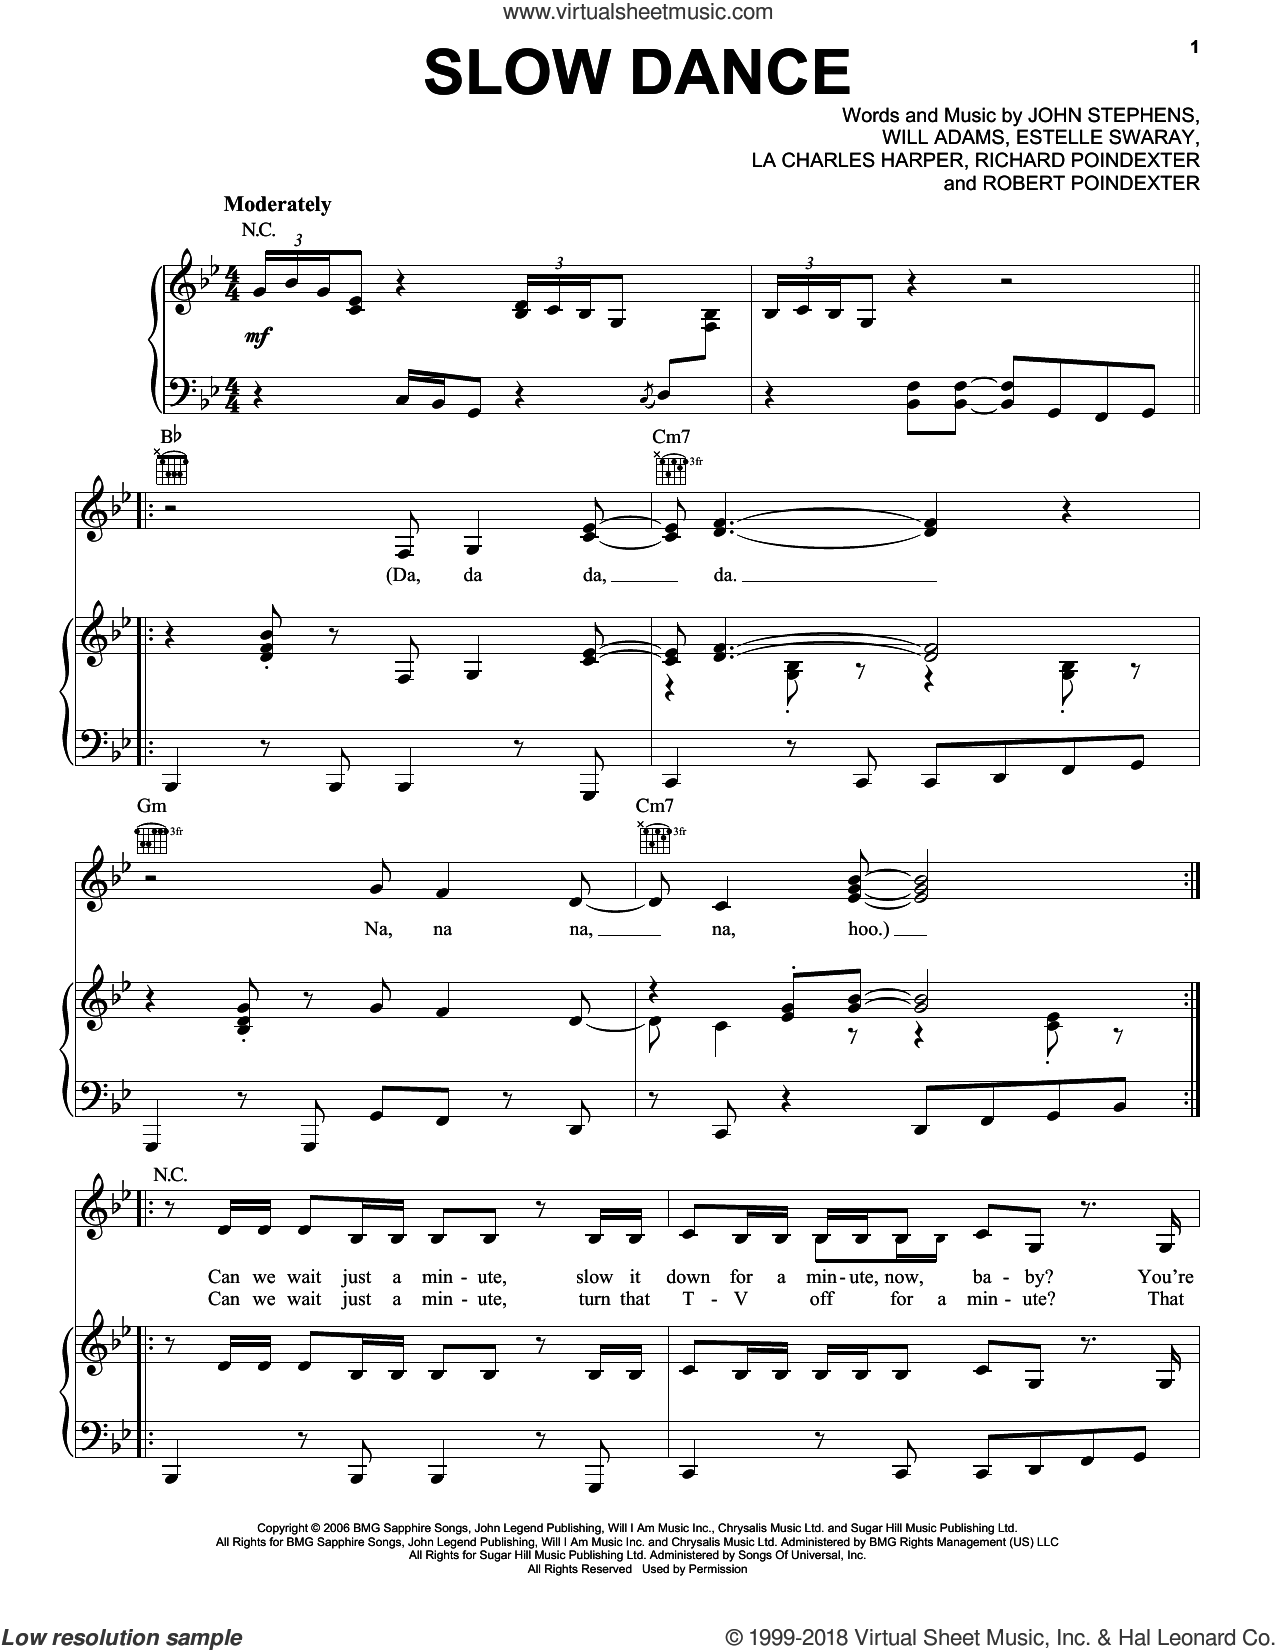 Slow Dance sheet music for voice, piano or guitar by John Legend, Estelle Swaray, John Stephens, Lewis Poindexter and Will Adams, intermediate skill level